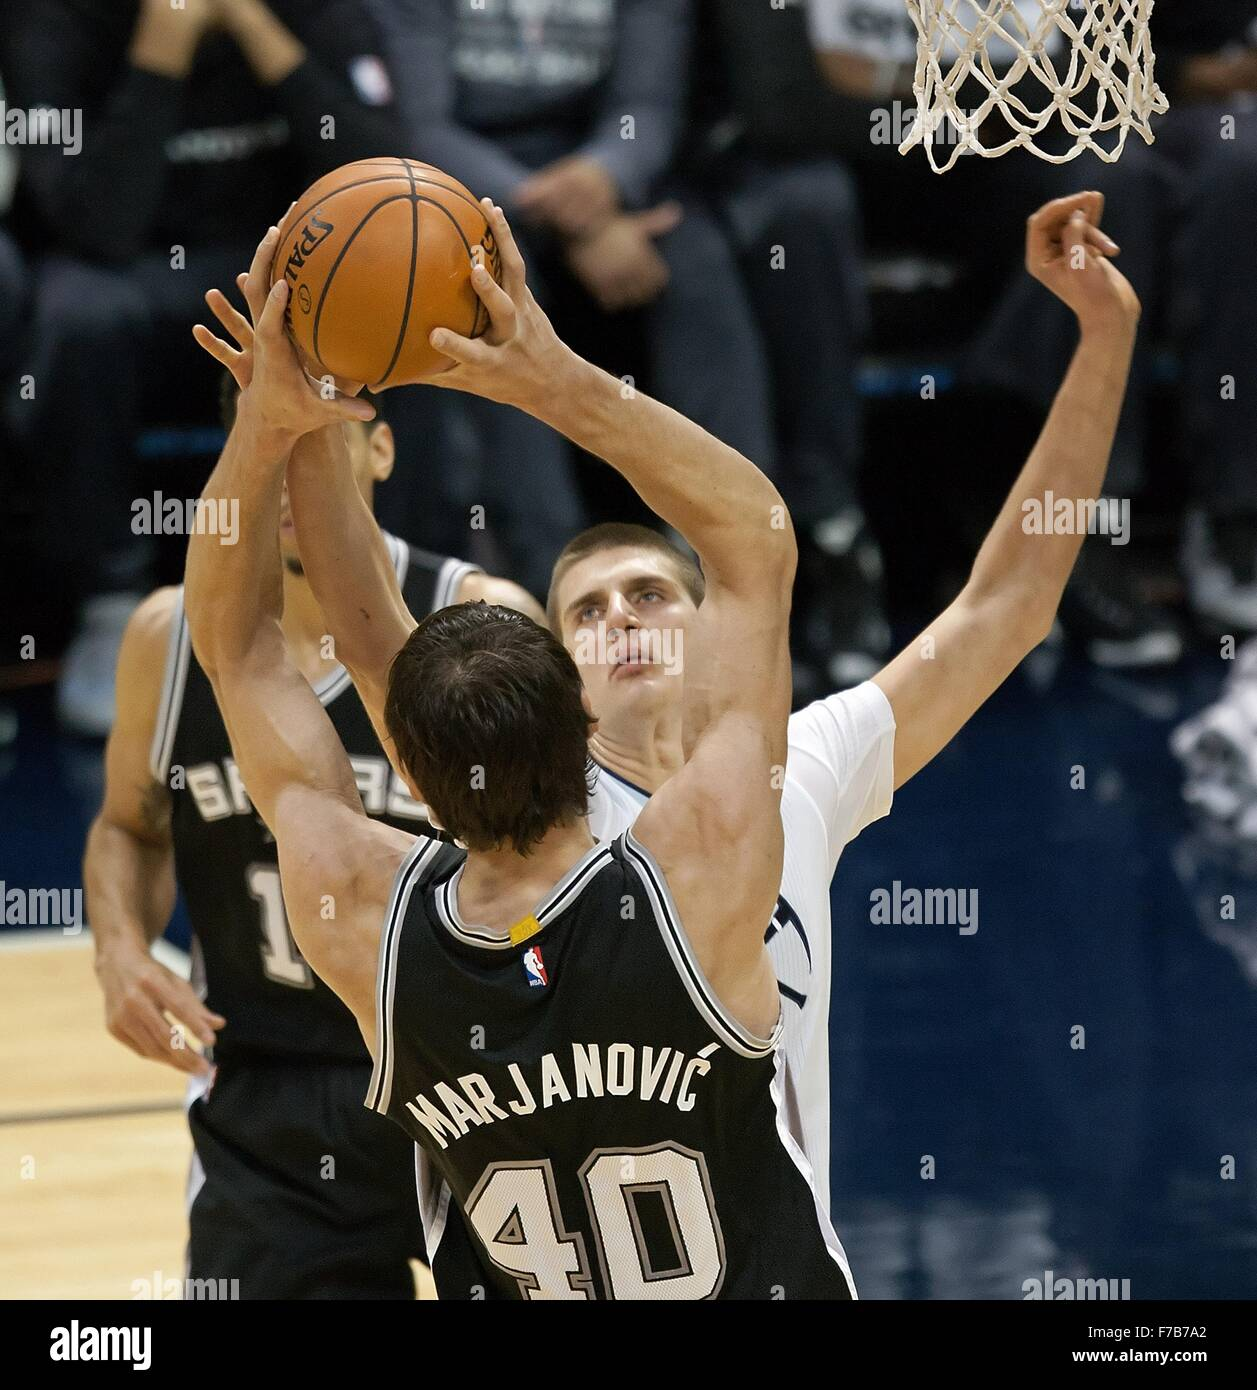 Boban Marjanovic Stock Photos & Boban Marjanovic Stock